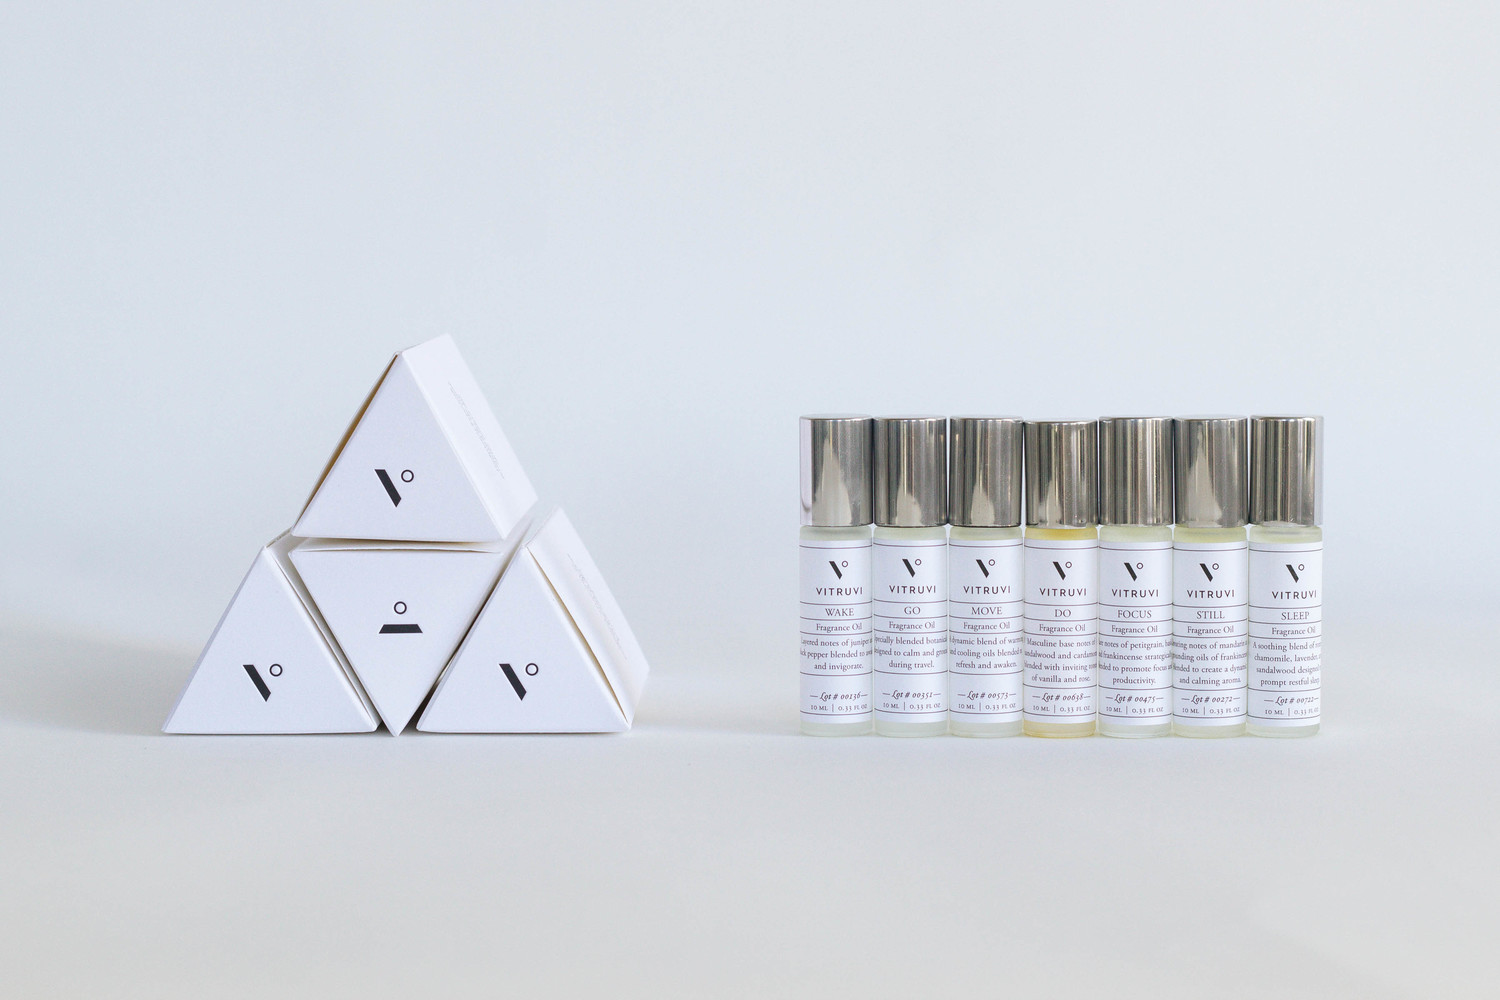 VITRUVI_essential_oil_product_styling_photography